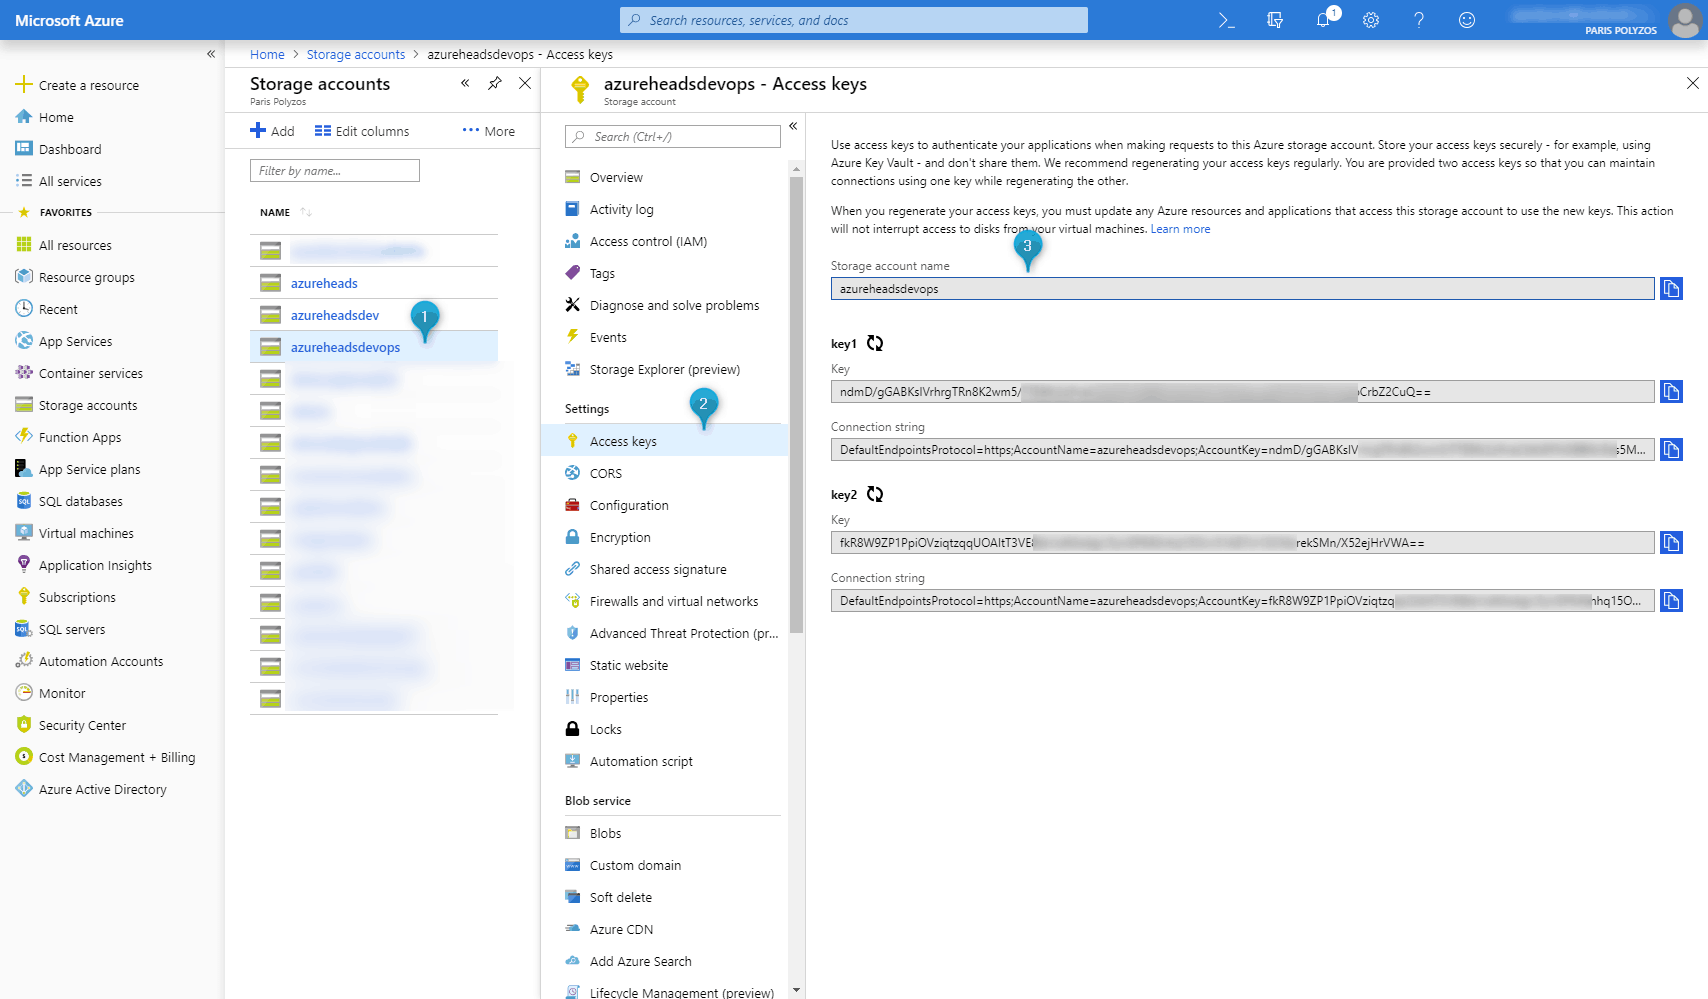 Different options to upload single or multiple files to your